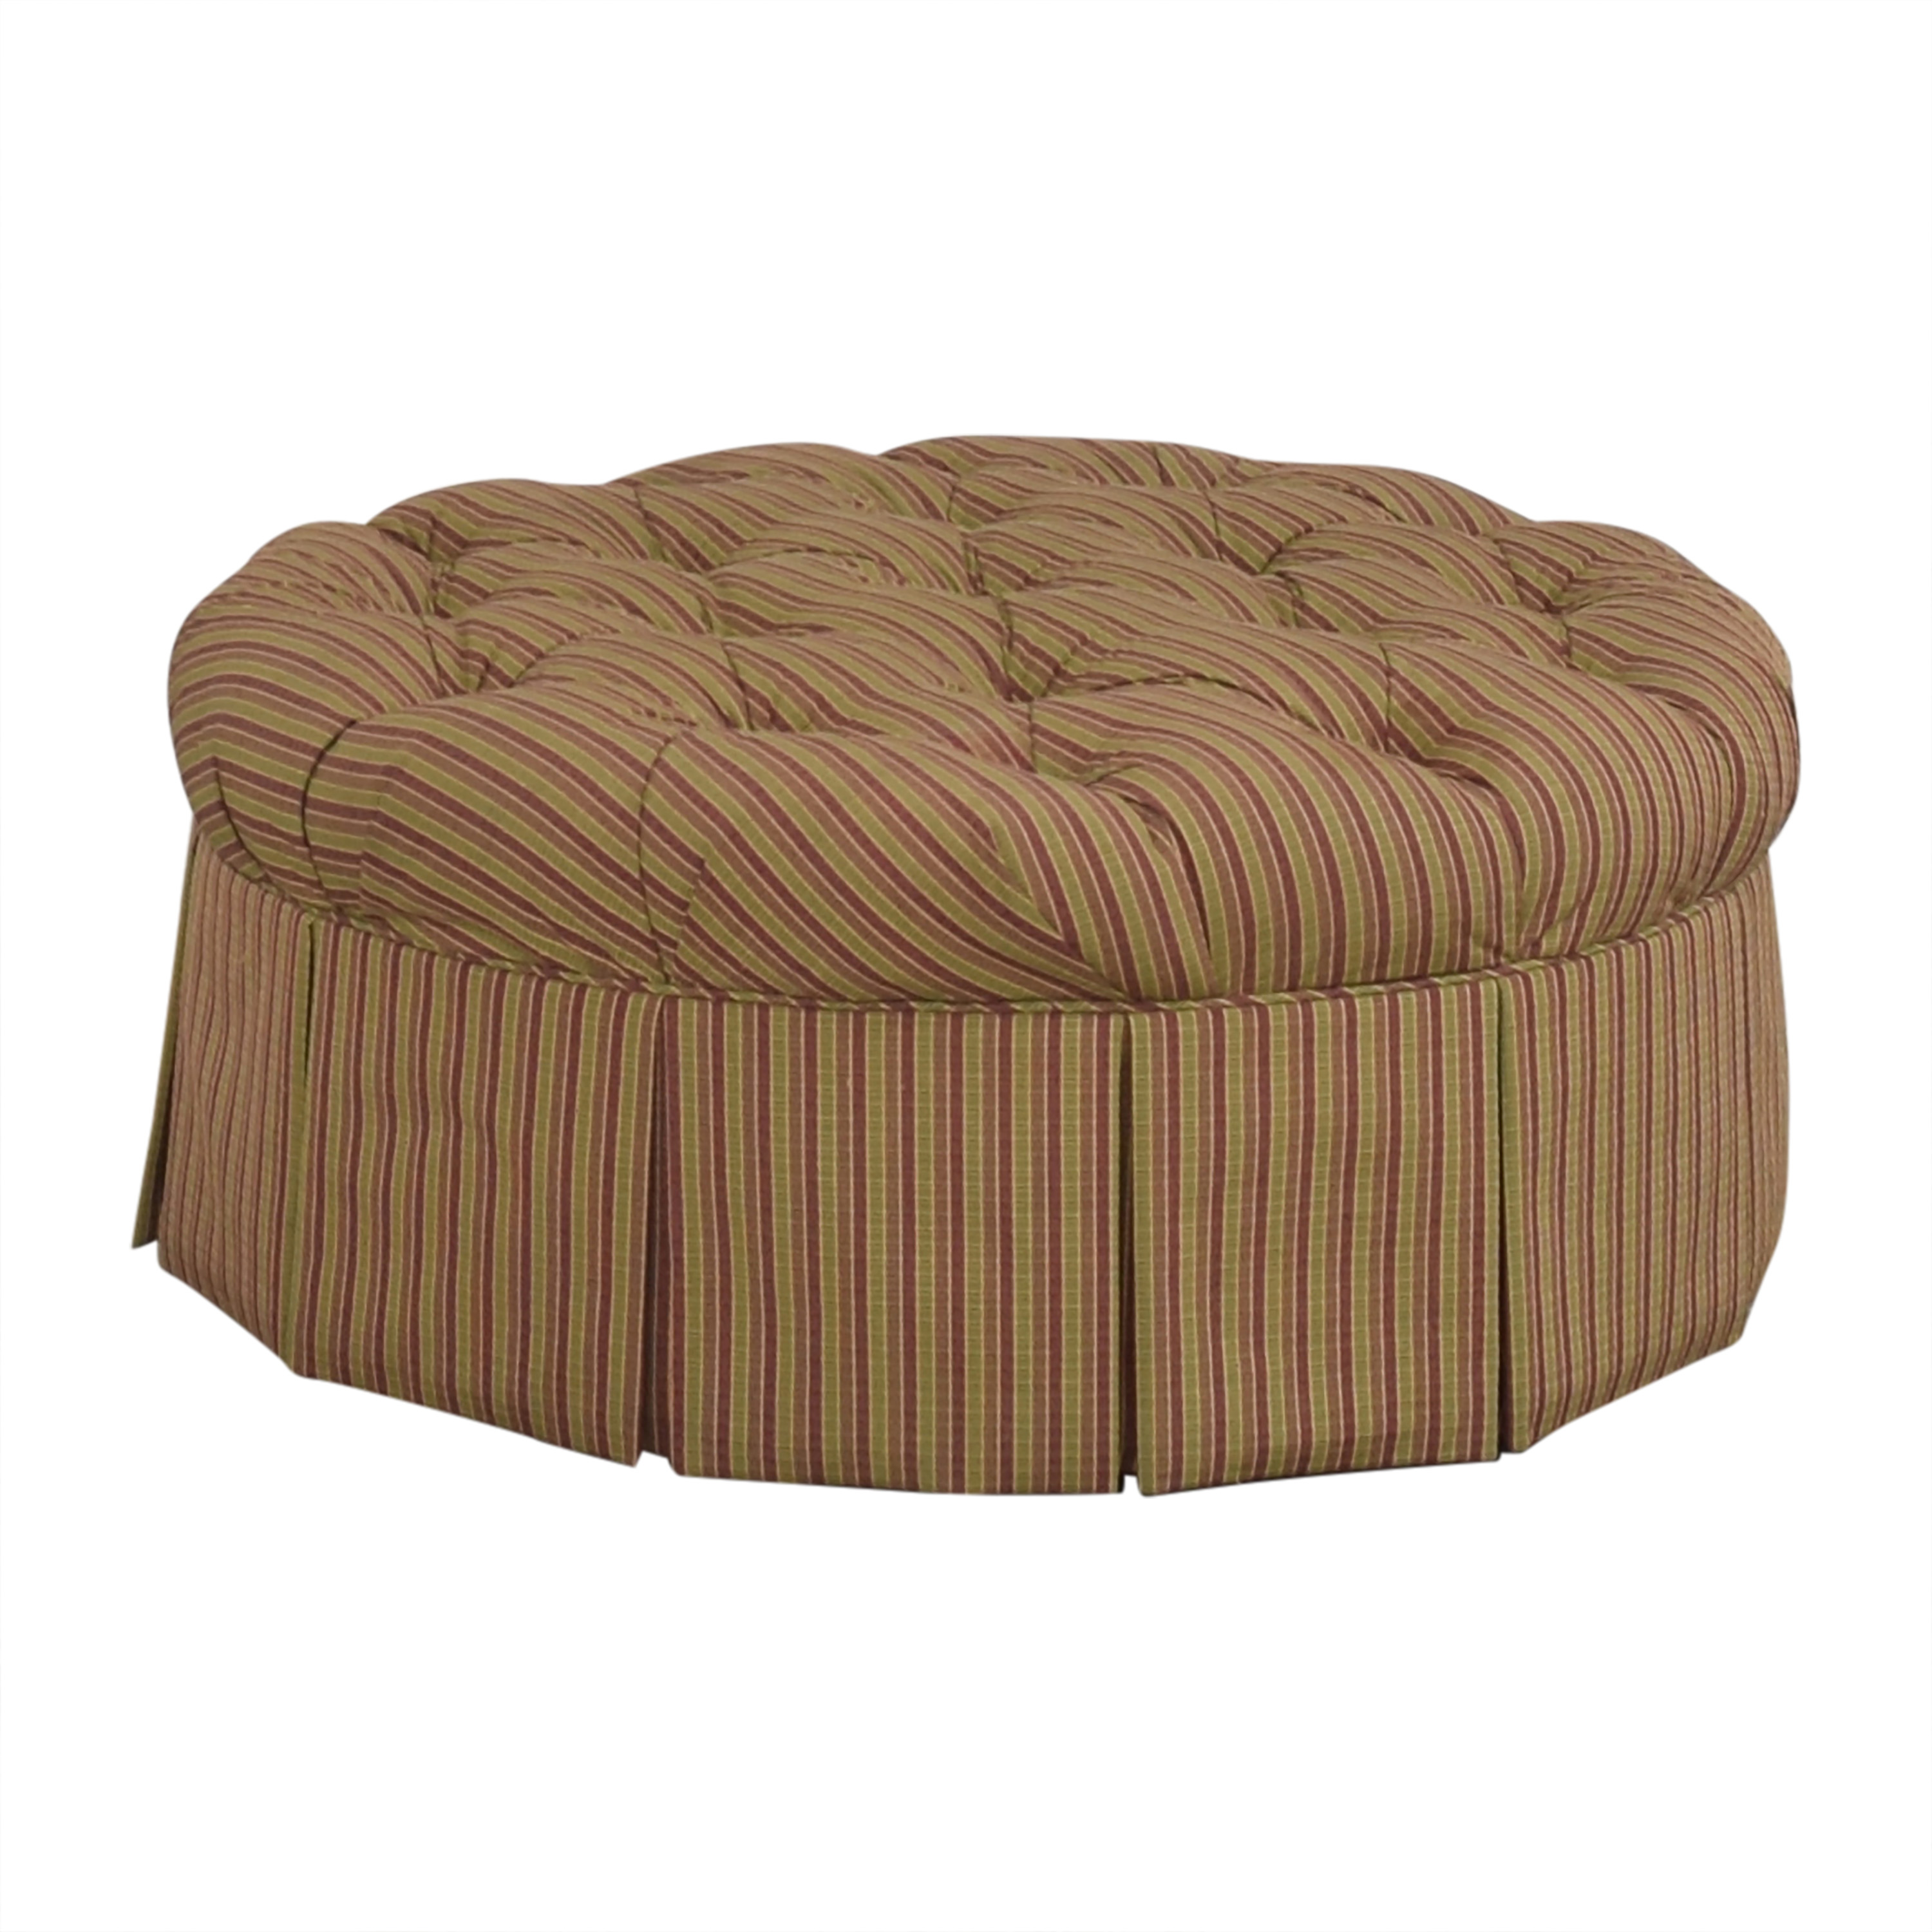 Domain Home Round Tufted Ottoman sale